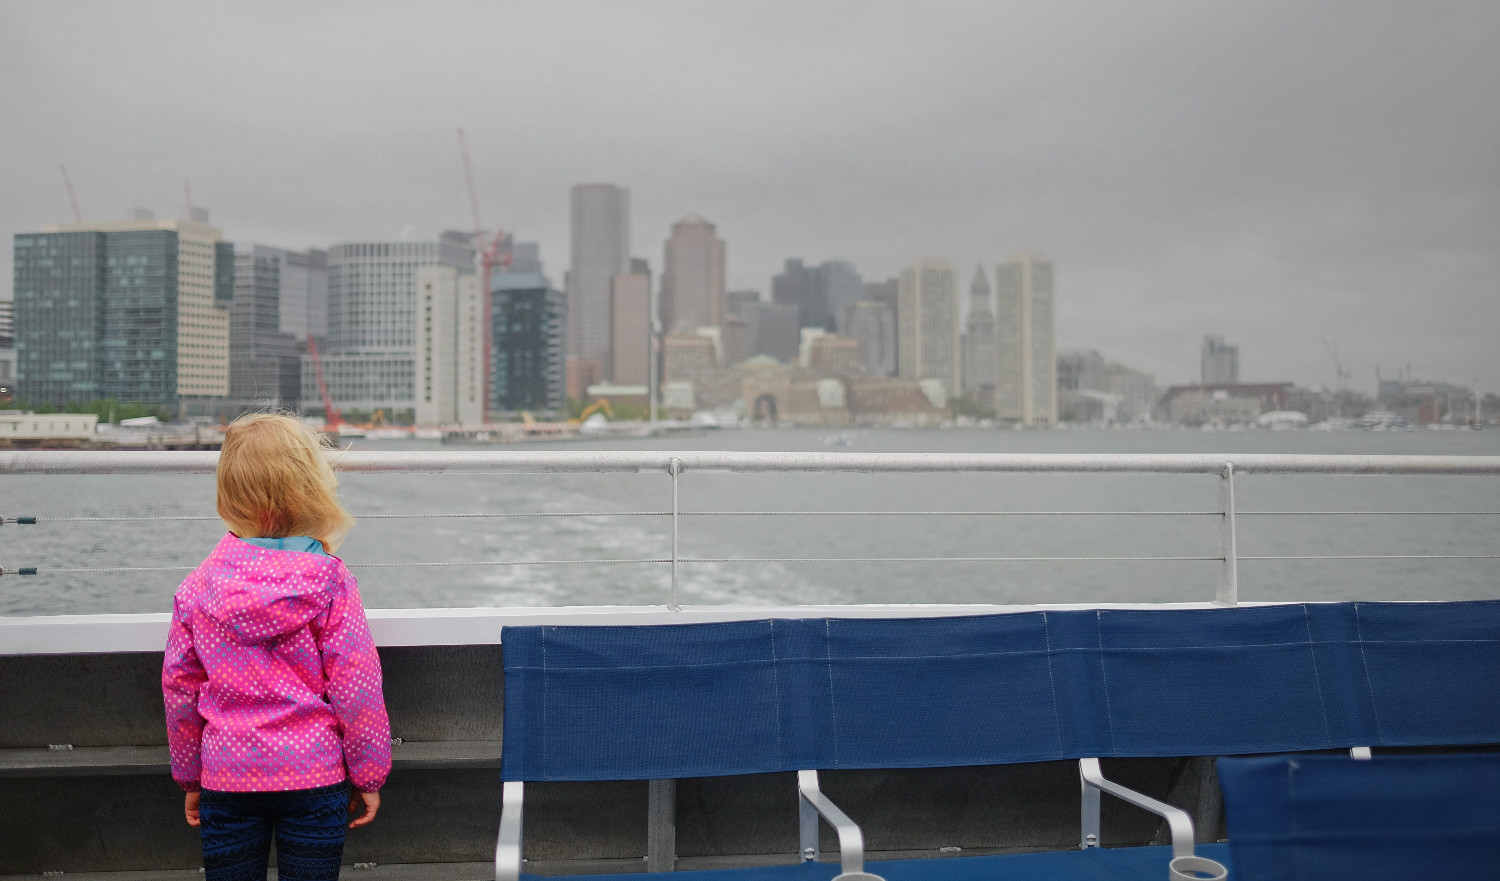 And we're off! One of the best parts of the ferry ride is watching Boston's skyline get smaller on the horizon.